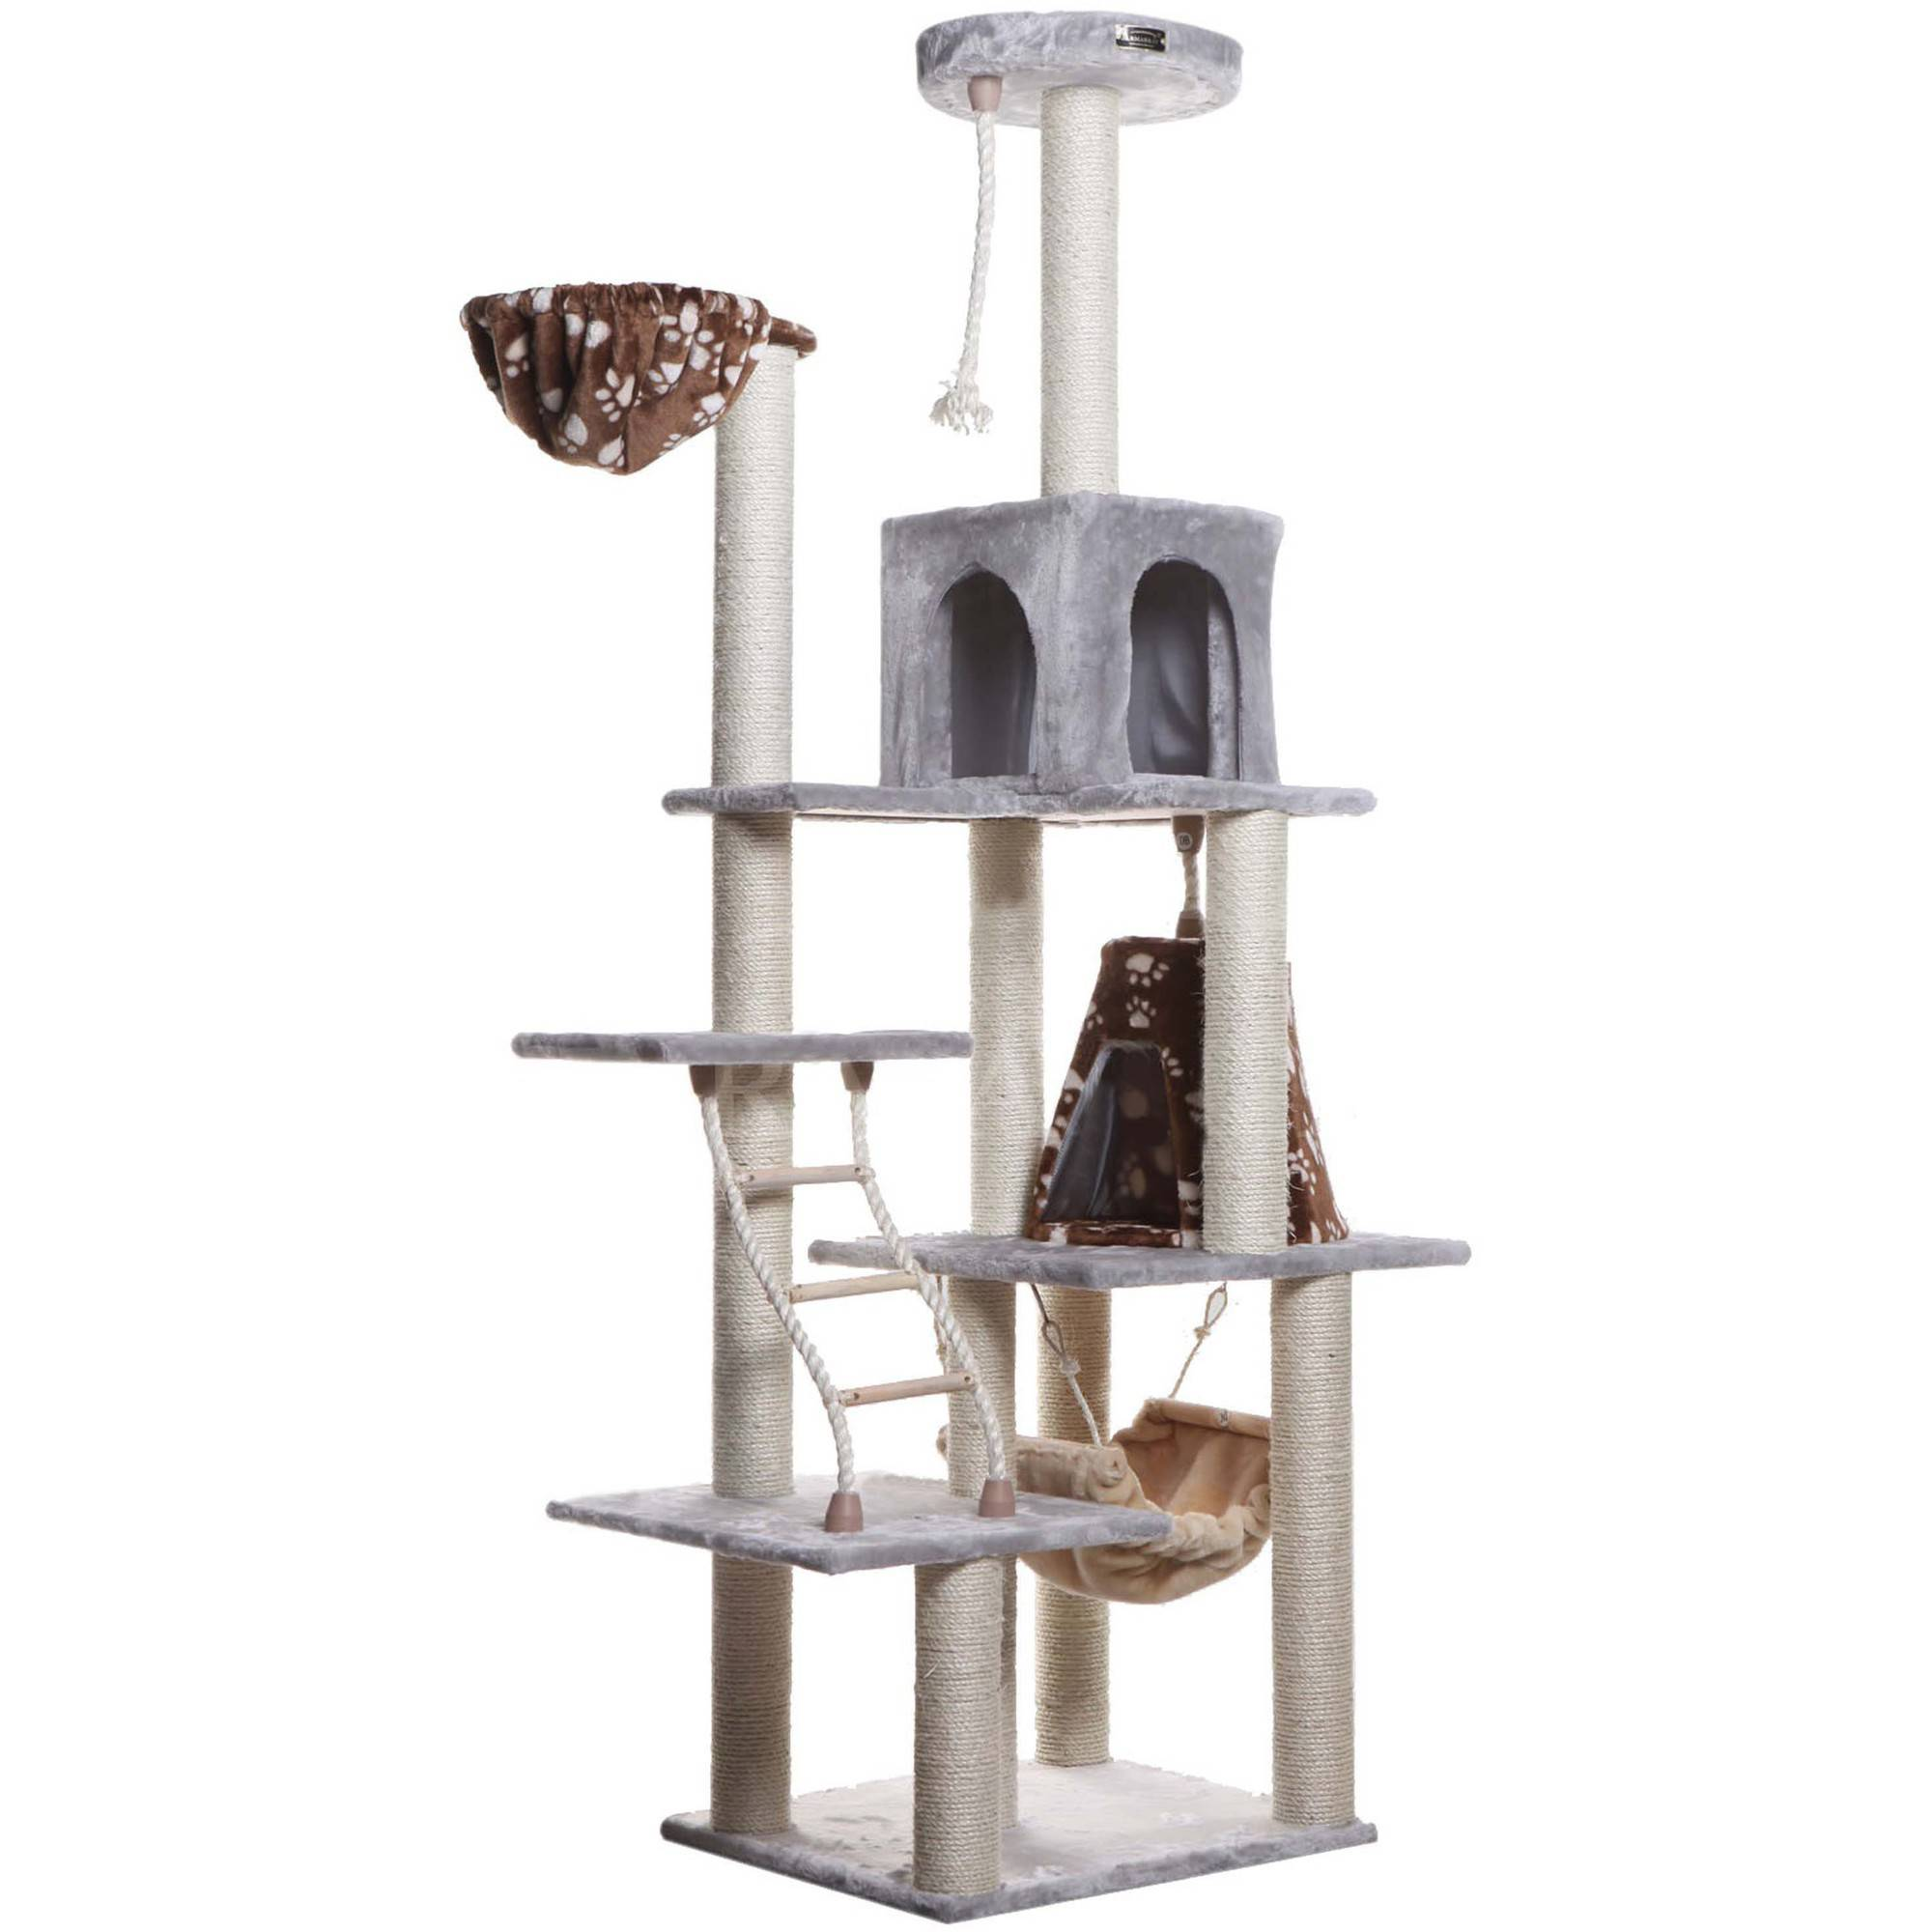 Armarkat Classic Cat Tree Model A7802, 78 inch Silver Gray by Aeromark Intl Inc